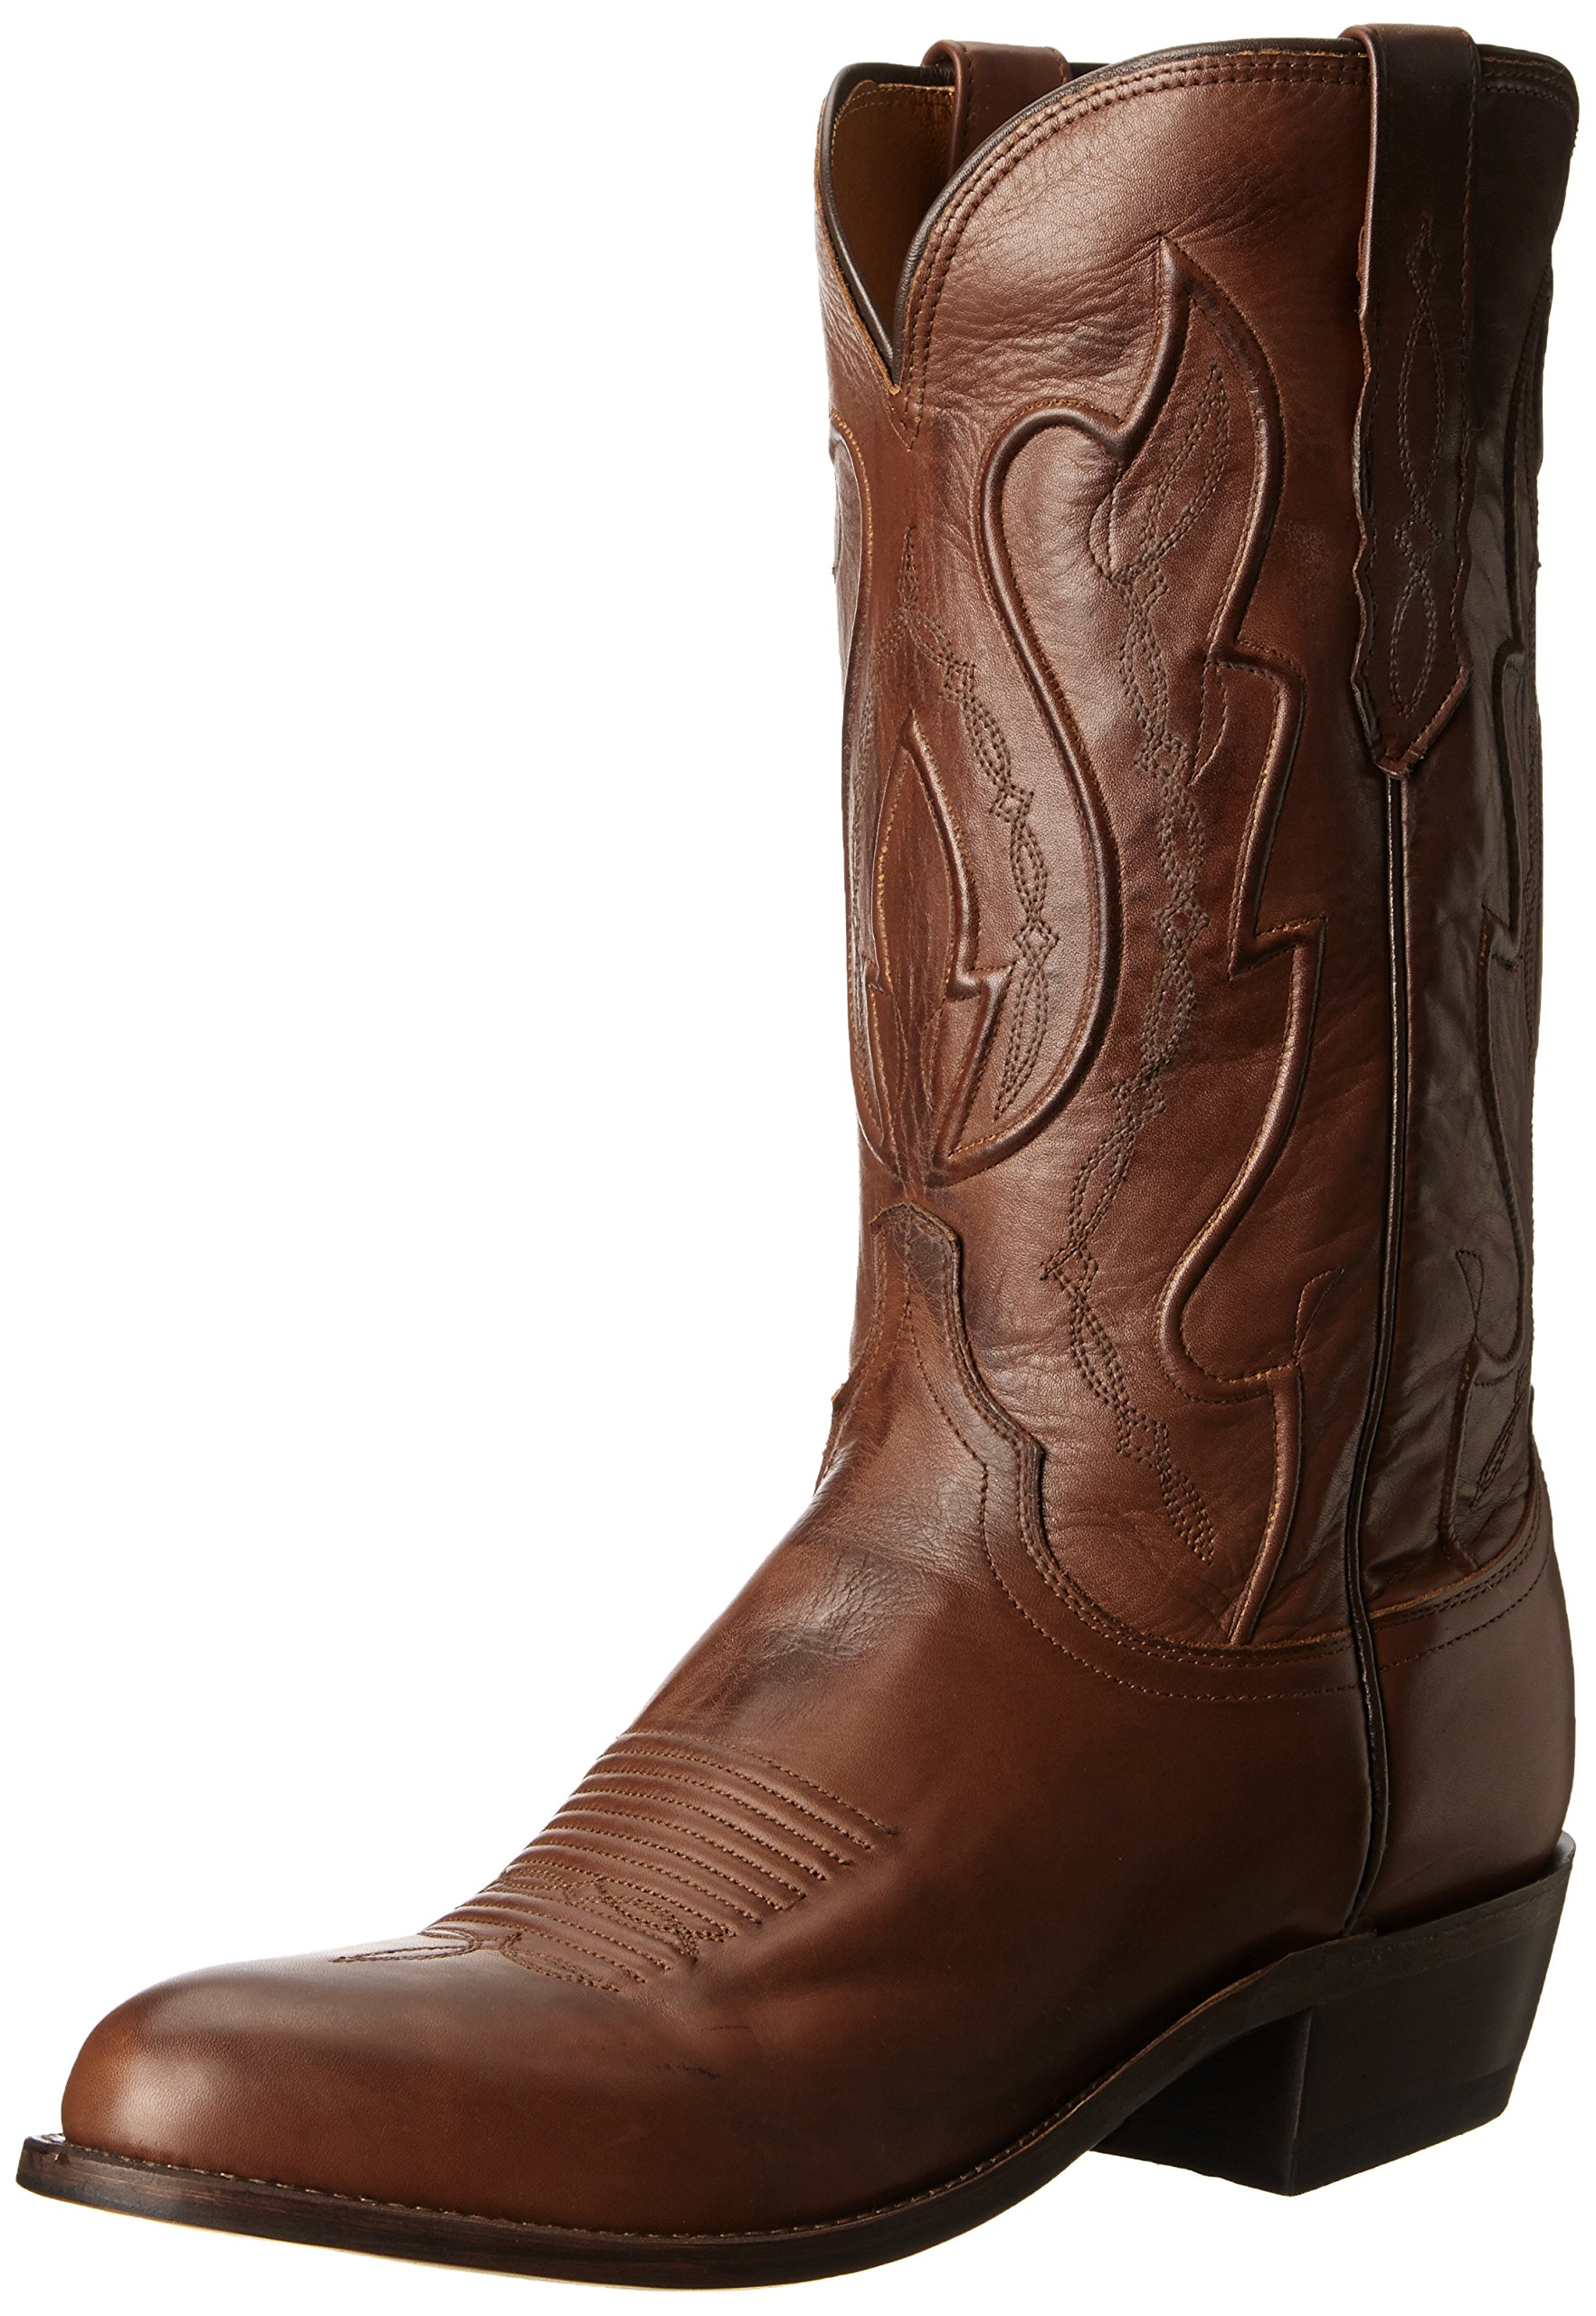 Lucchese Bootmaker Men's Cole-TN RNCH Hand Riding Boot, Tan Ranch, 9.5 D US by Lucchese Bootmaker